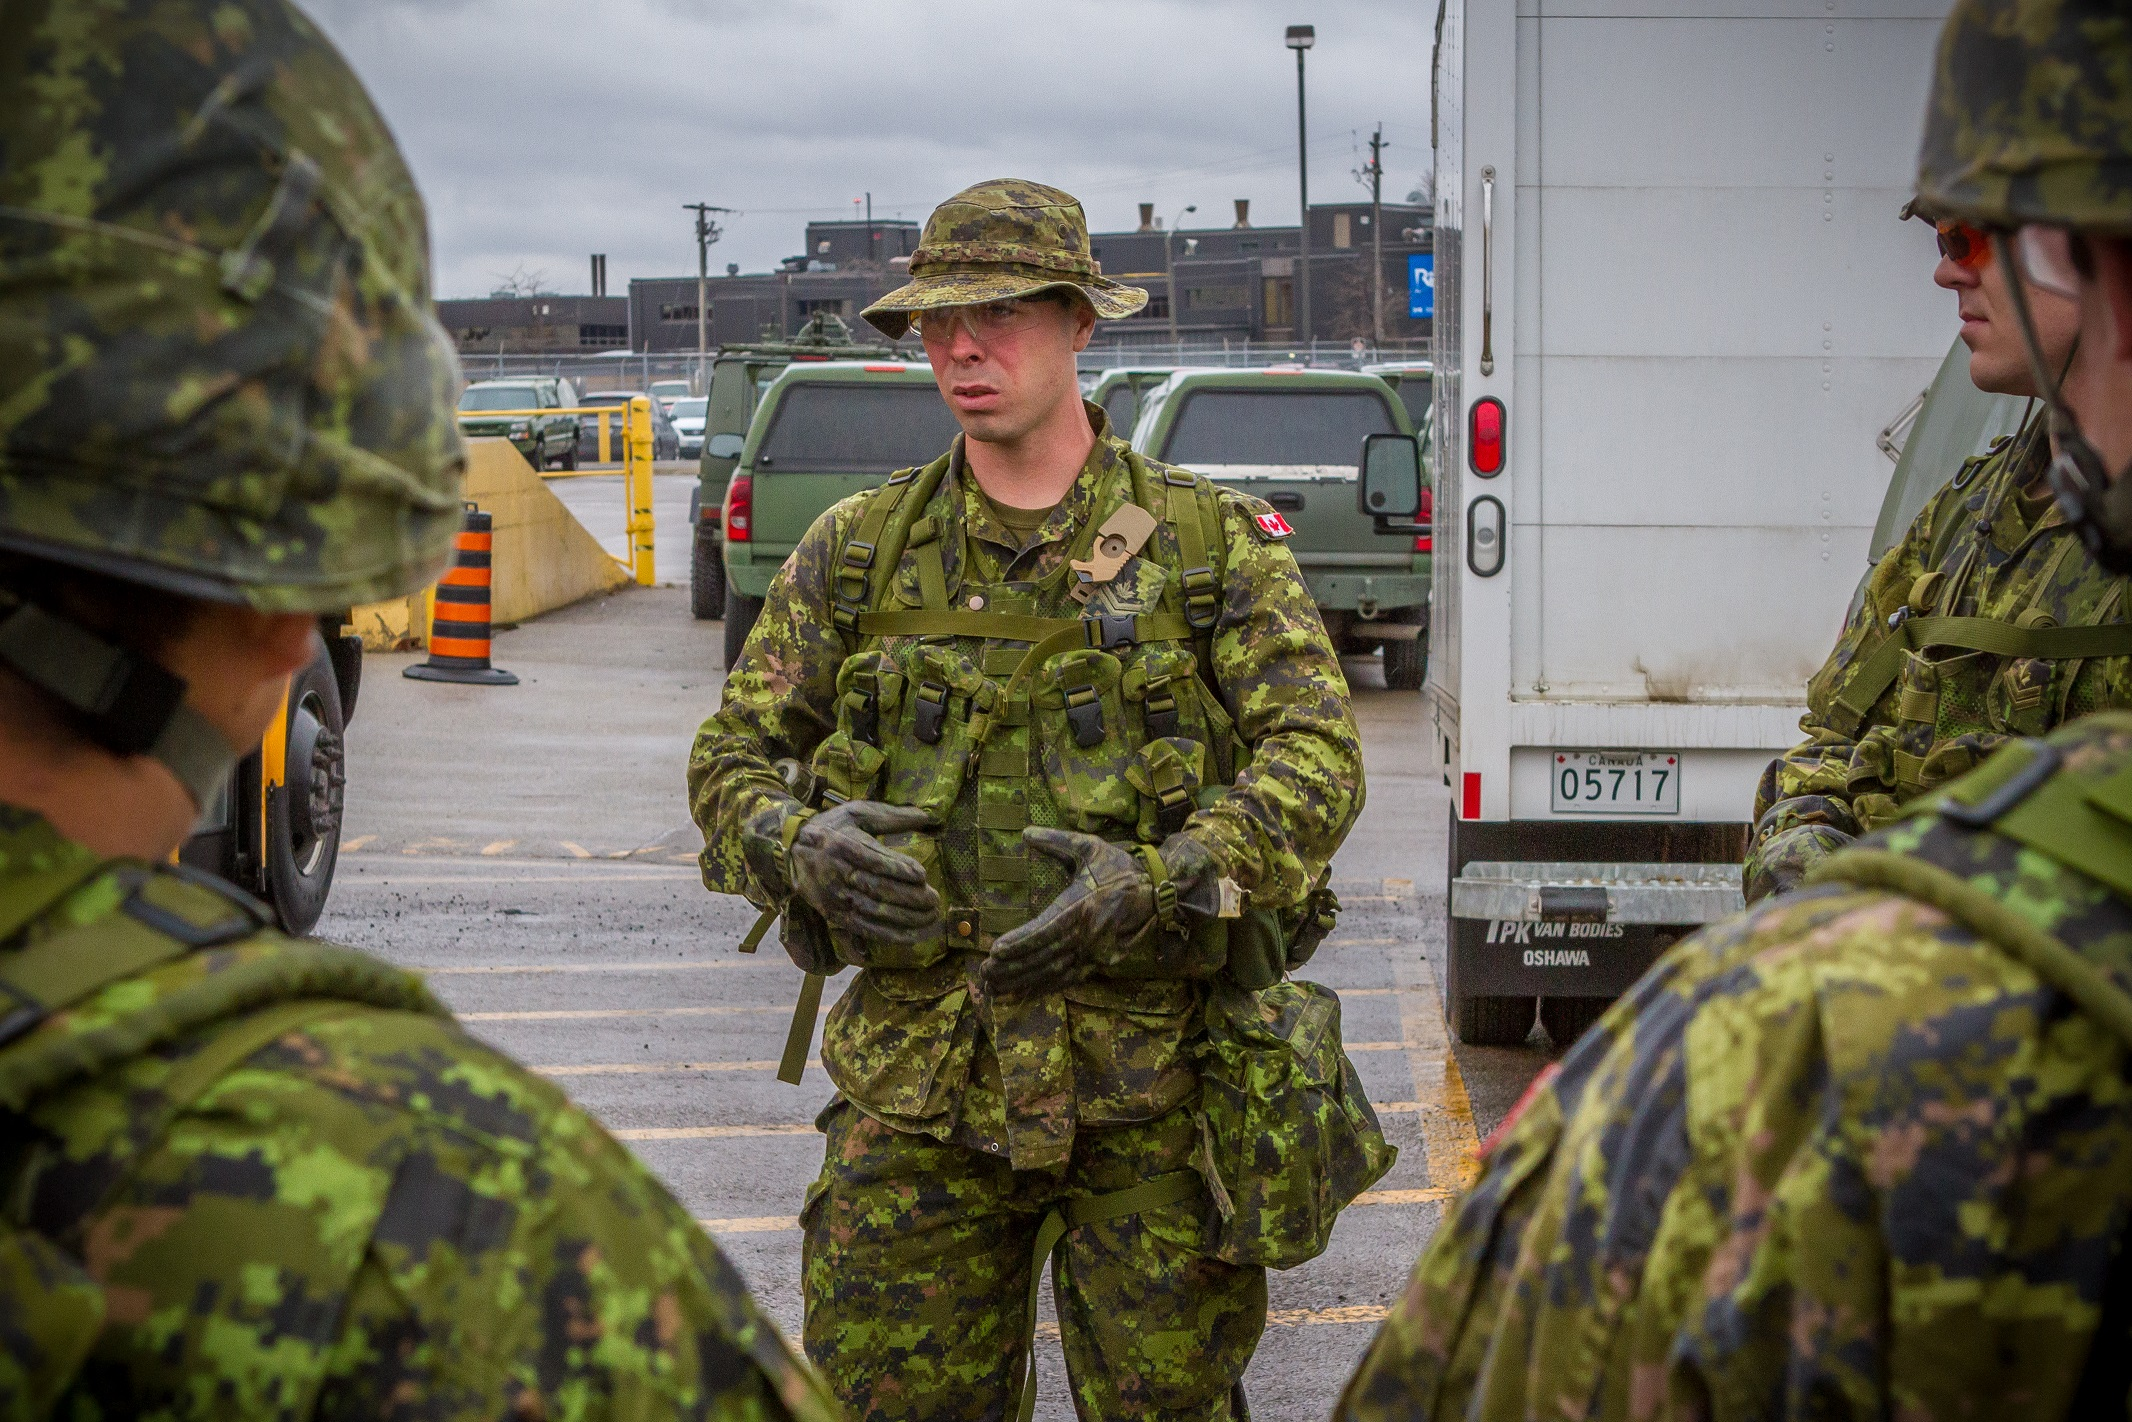 Master Corporal Tyler Brunton (Queens York Rangers) shares his experiences with procedures for vehicle checkpoints as part of Operation PROVISION. Photo by: Corporal Justin Dreimanis, 32 CBG PA.